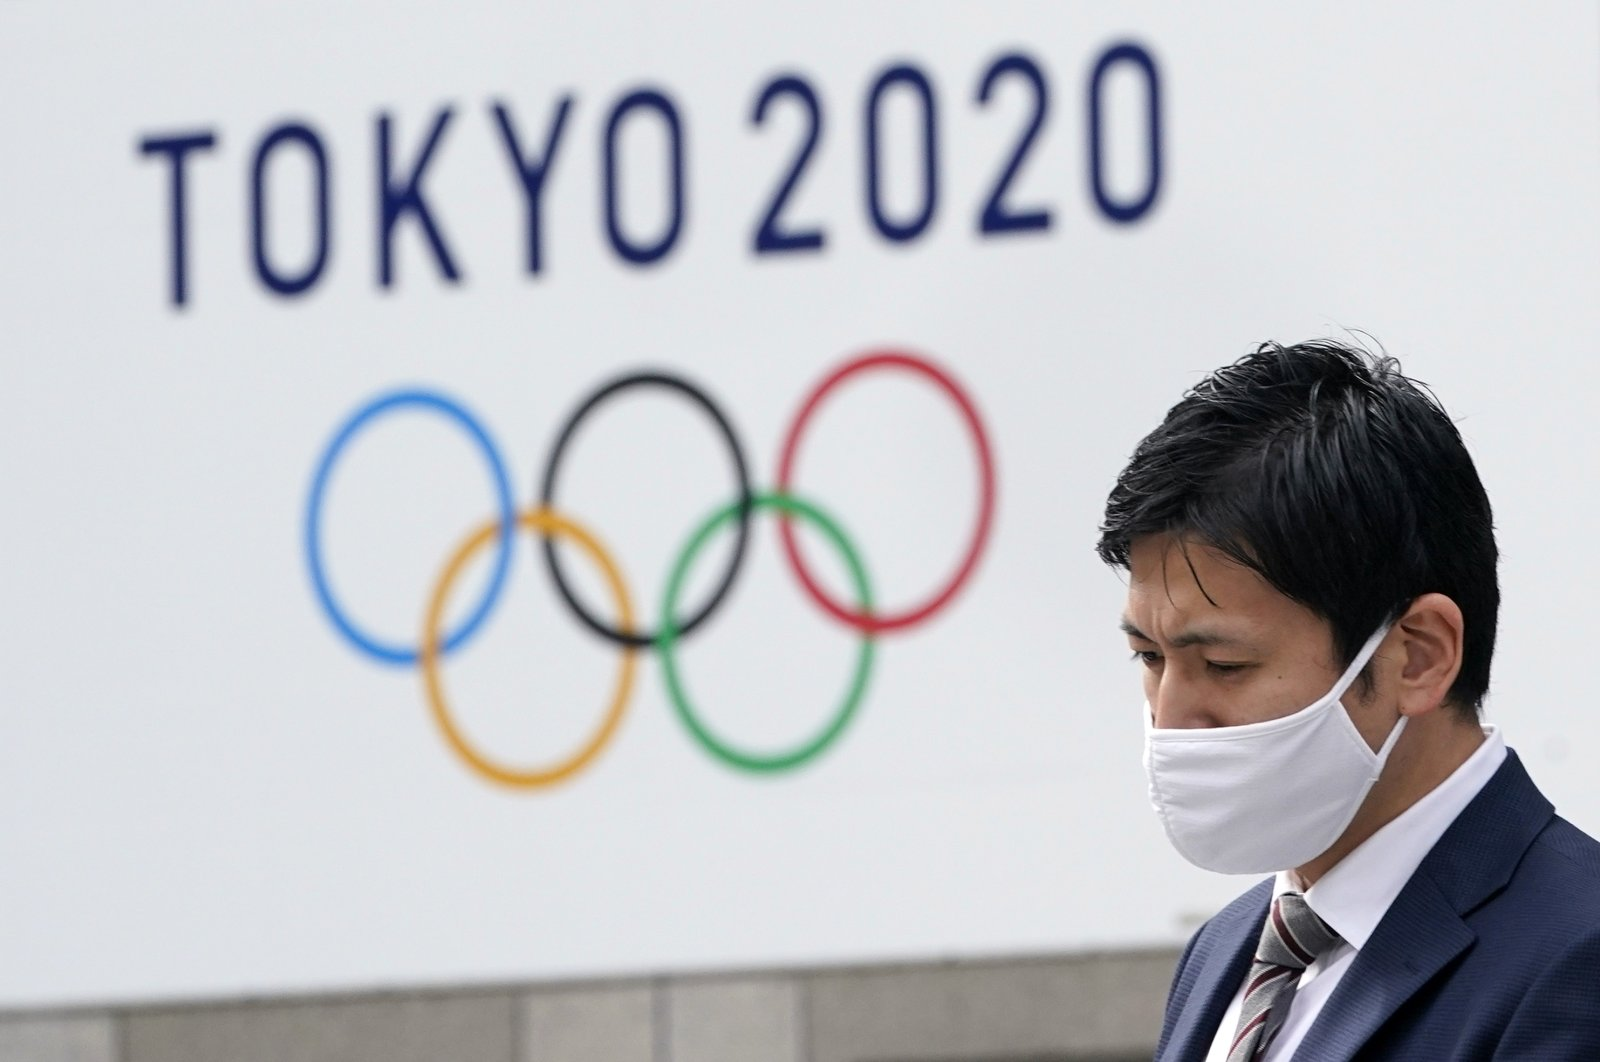 A man walks past a Tokyo Olympic Games advertising board outside the Tokyo Metropolitan Government Office in Tokyo, Japan, Jan. 27, 2021. (EPA Photo)